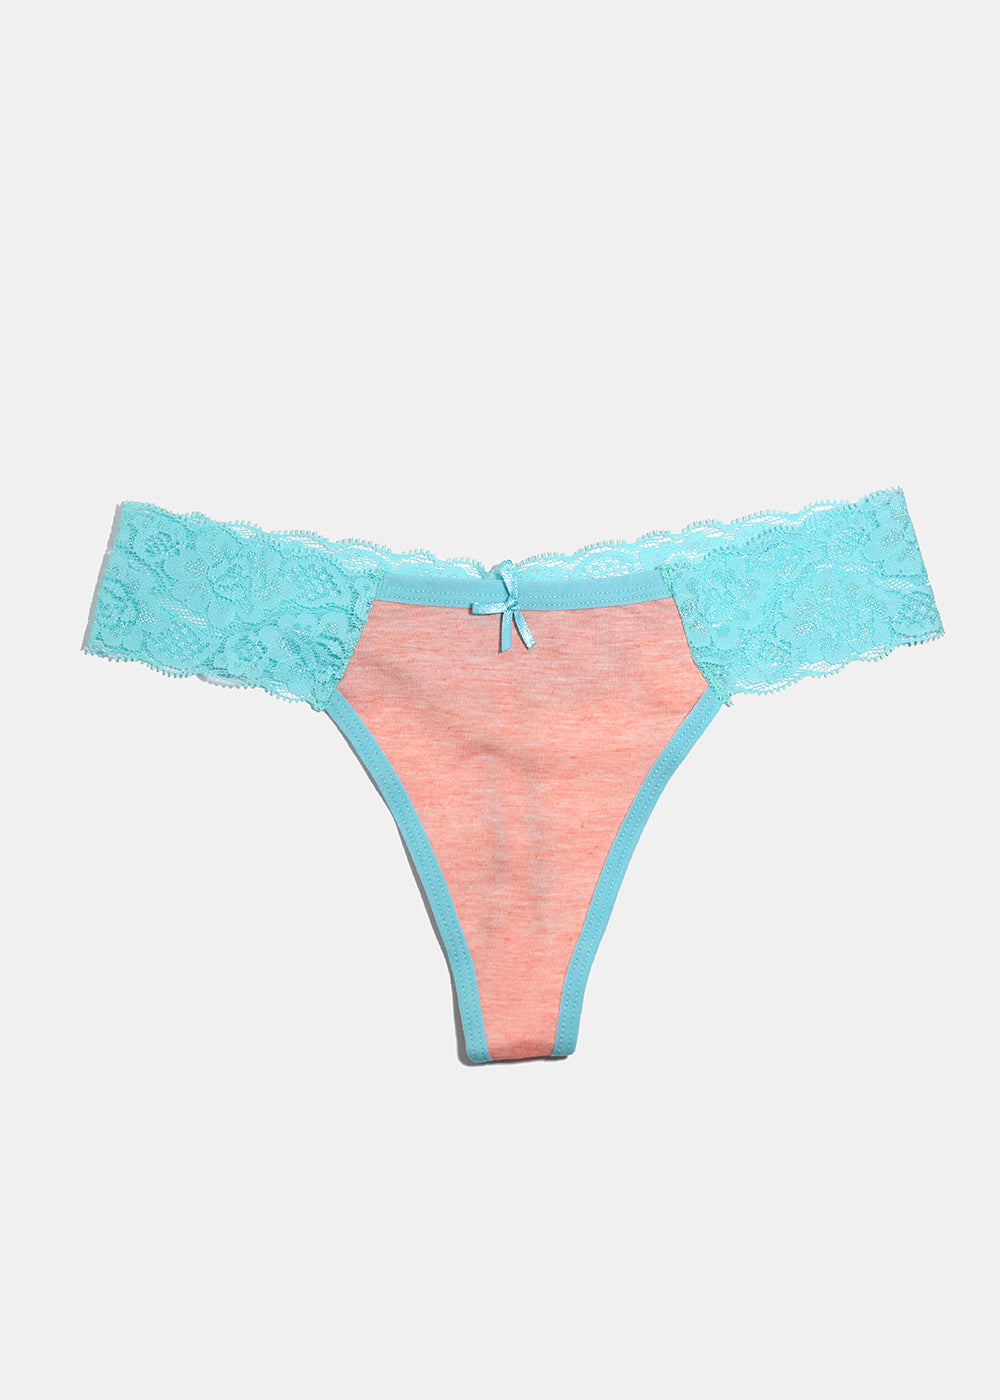 Heathered Lacy Thong Panty- Teal